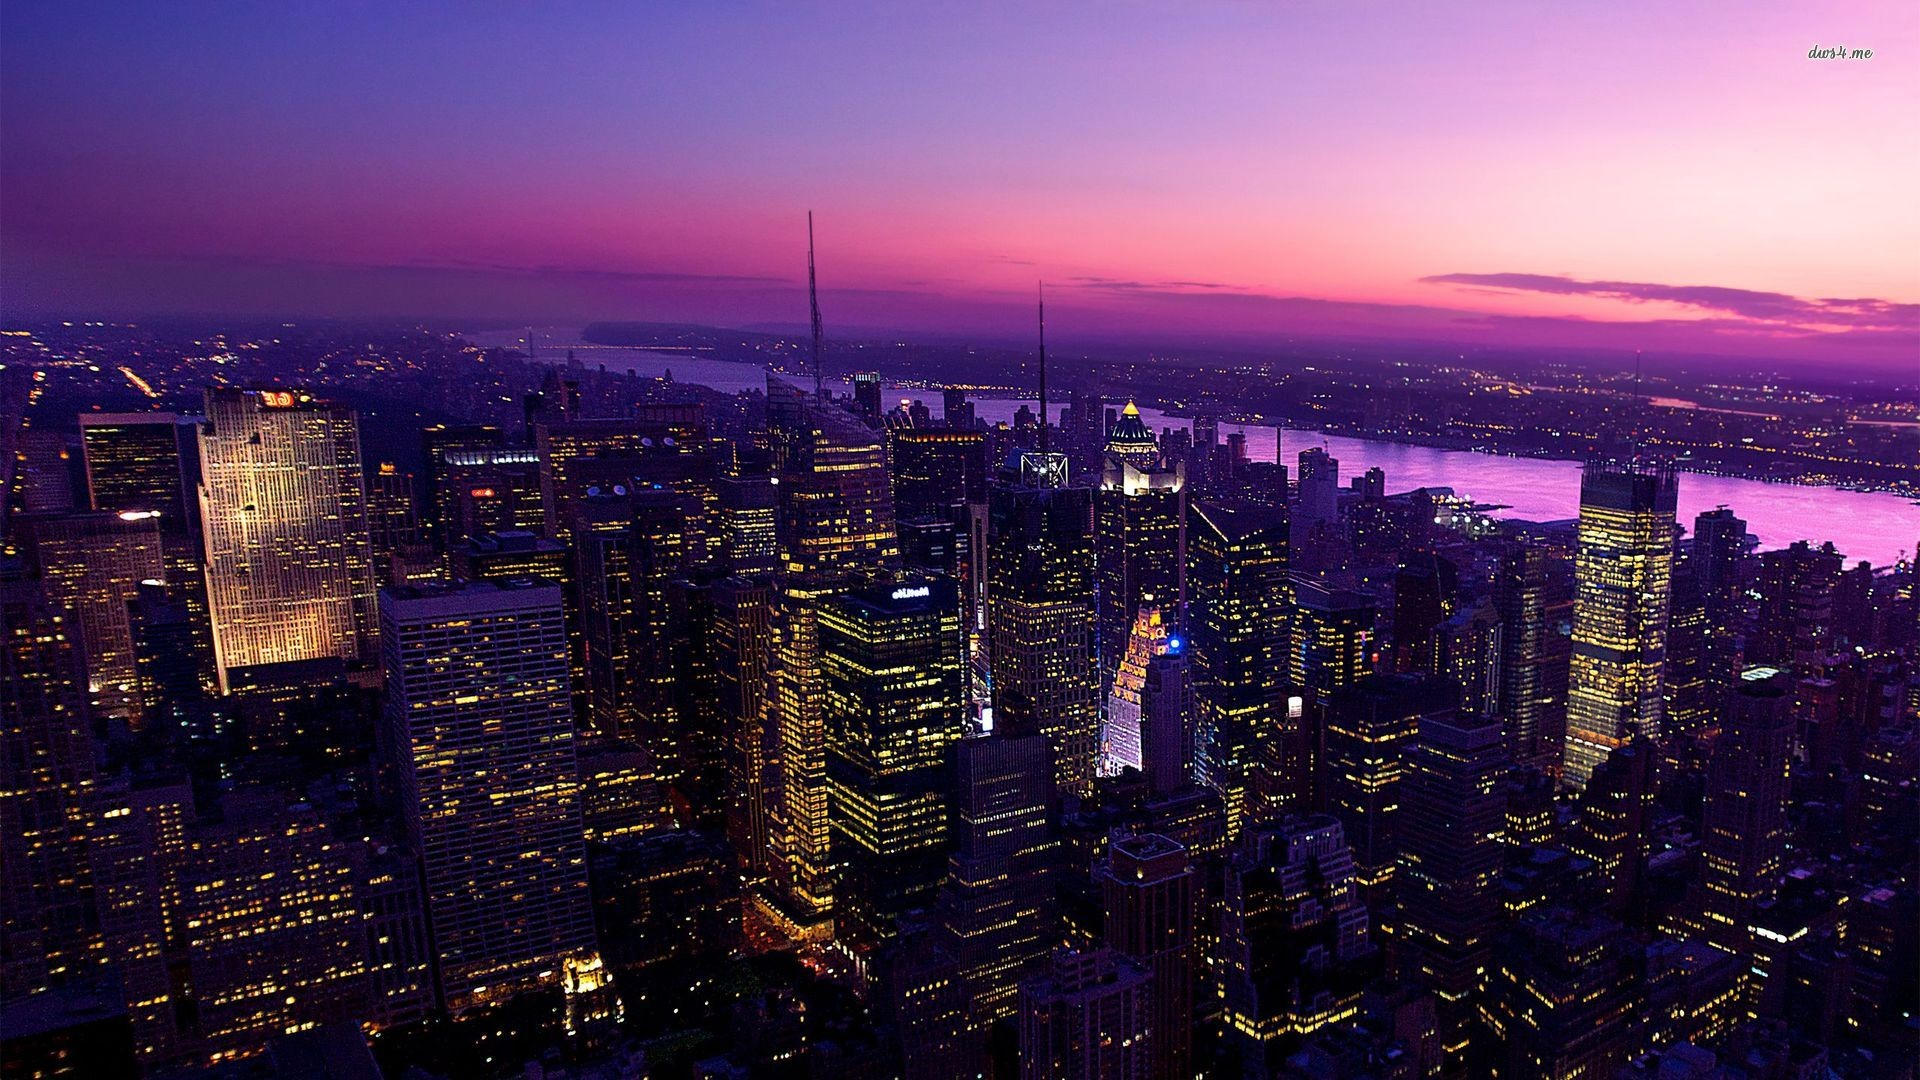 New York At Night Wallpaper Posted By Ethan Mercado